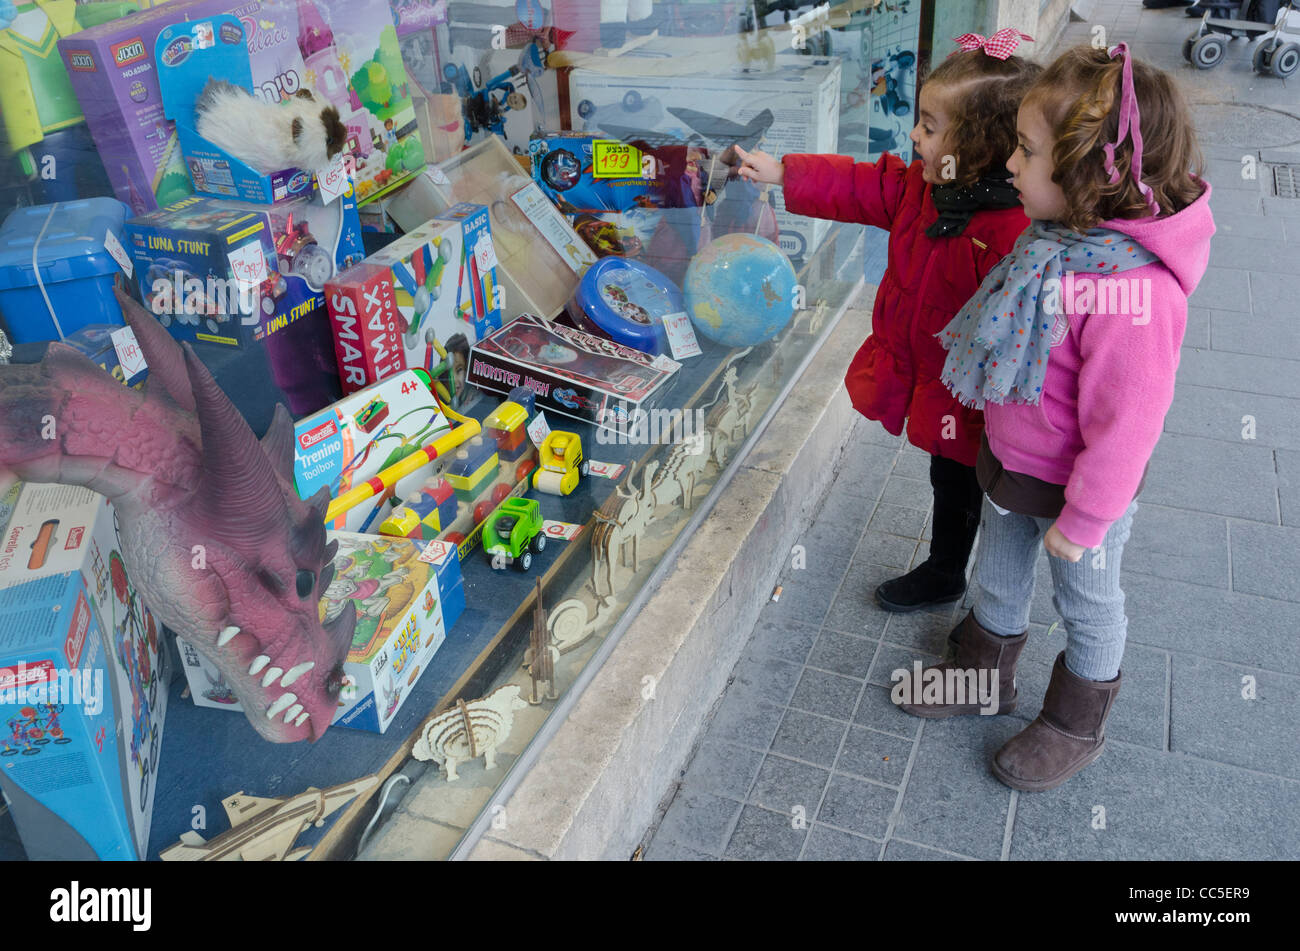 two young girls admiring the shopwindow of a toy shop. jaffa Road. Jerusalem. israel - Stock Image